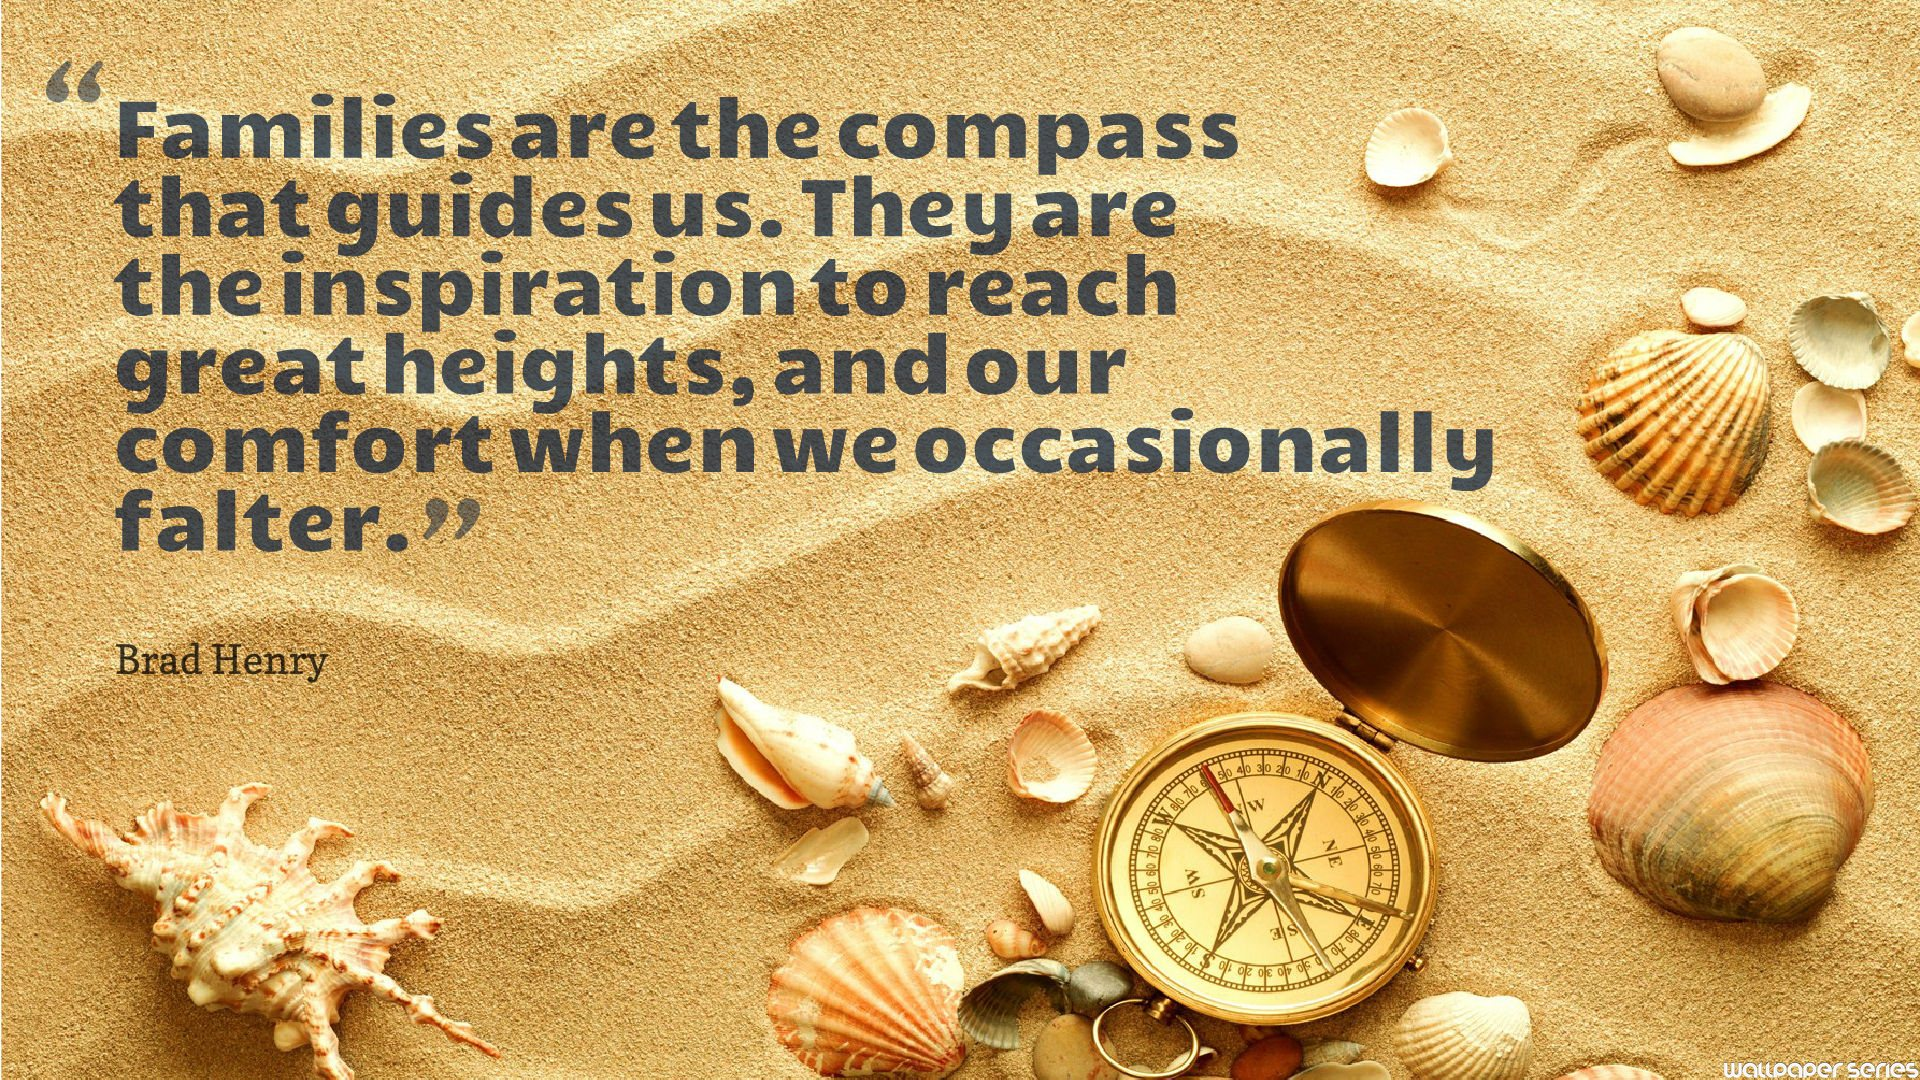 Compass Quotes About Family